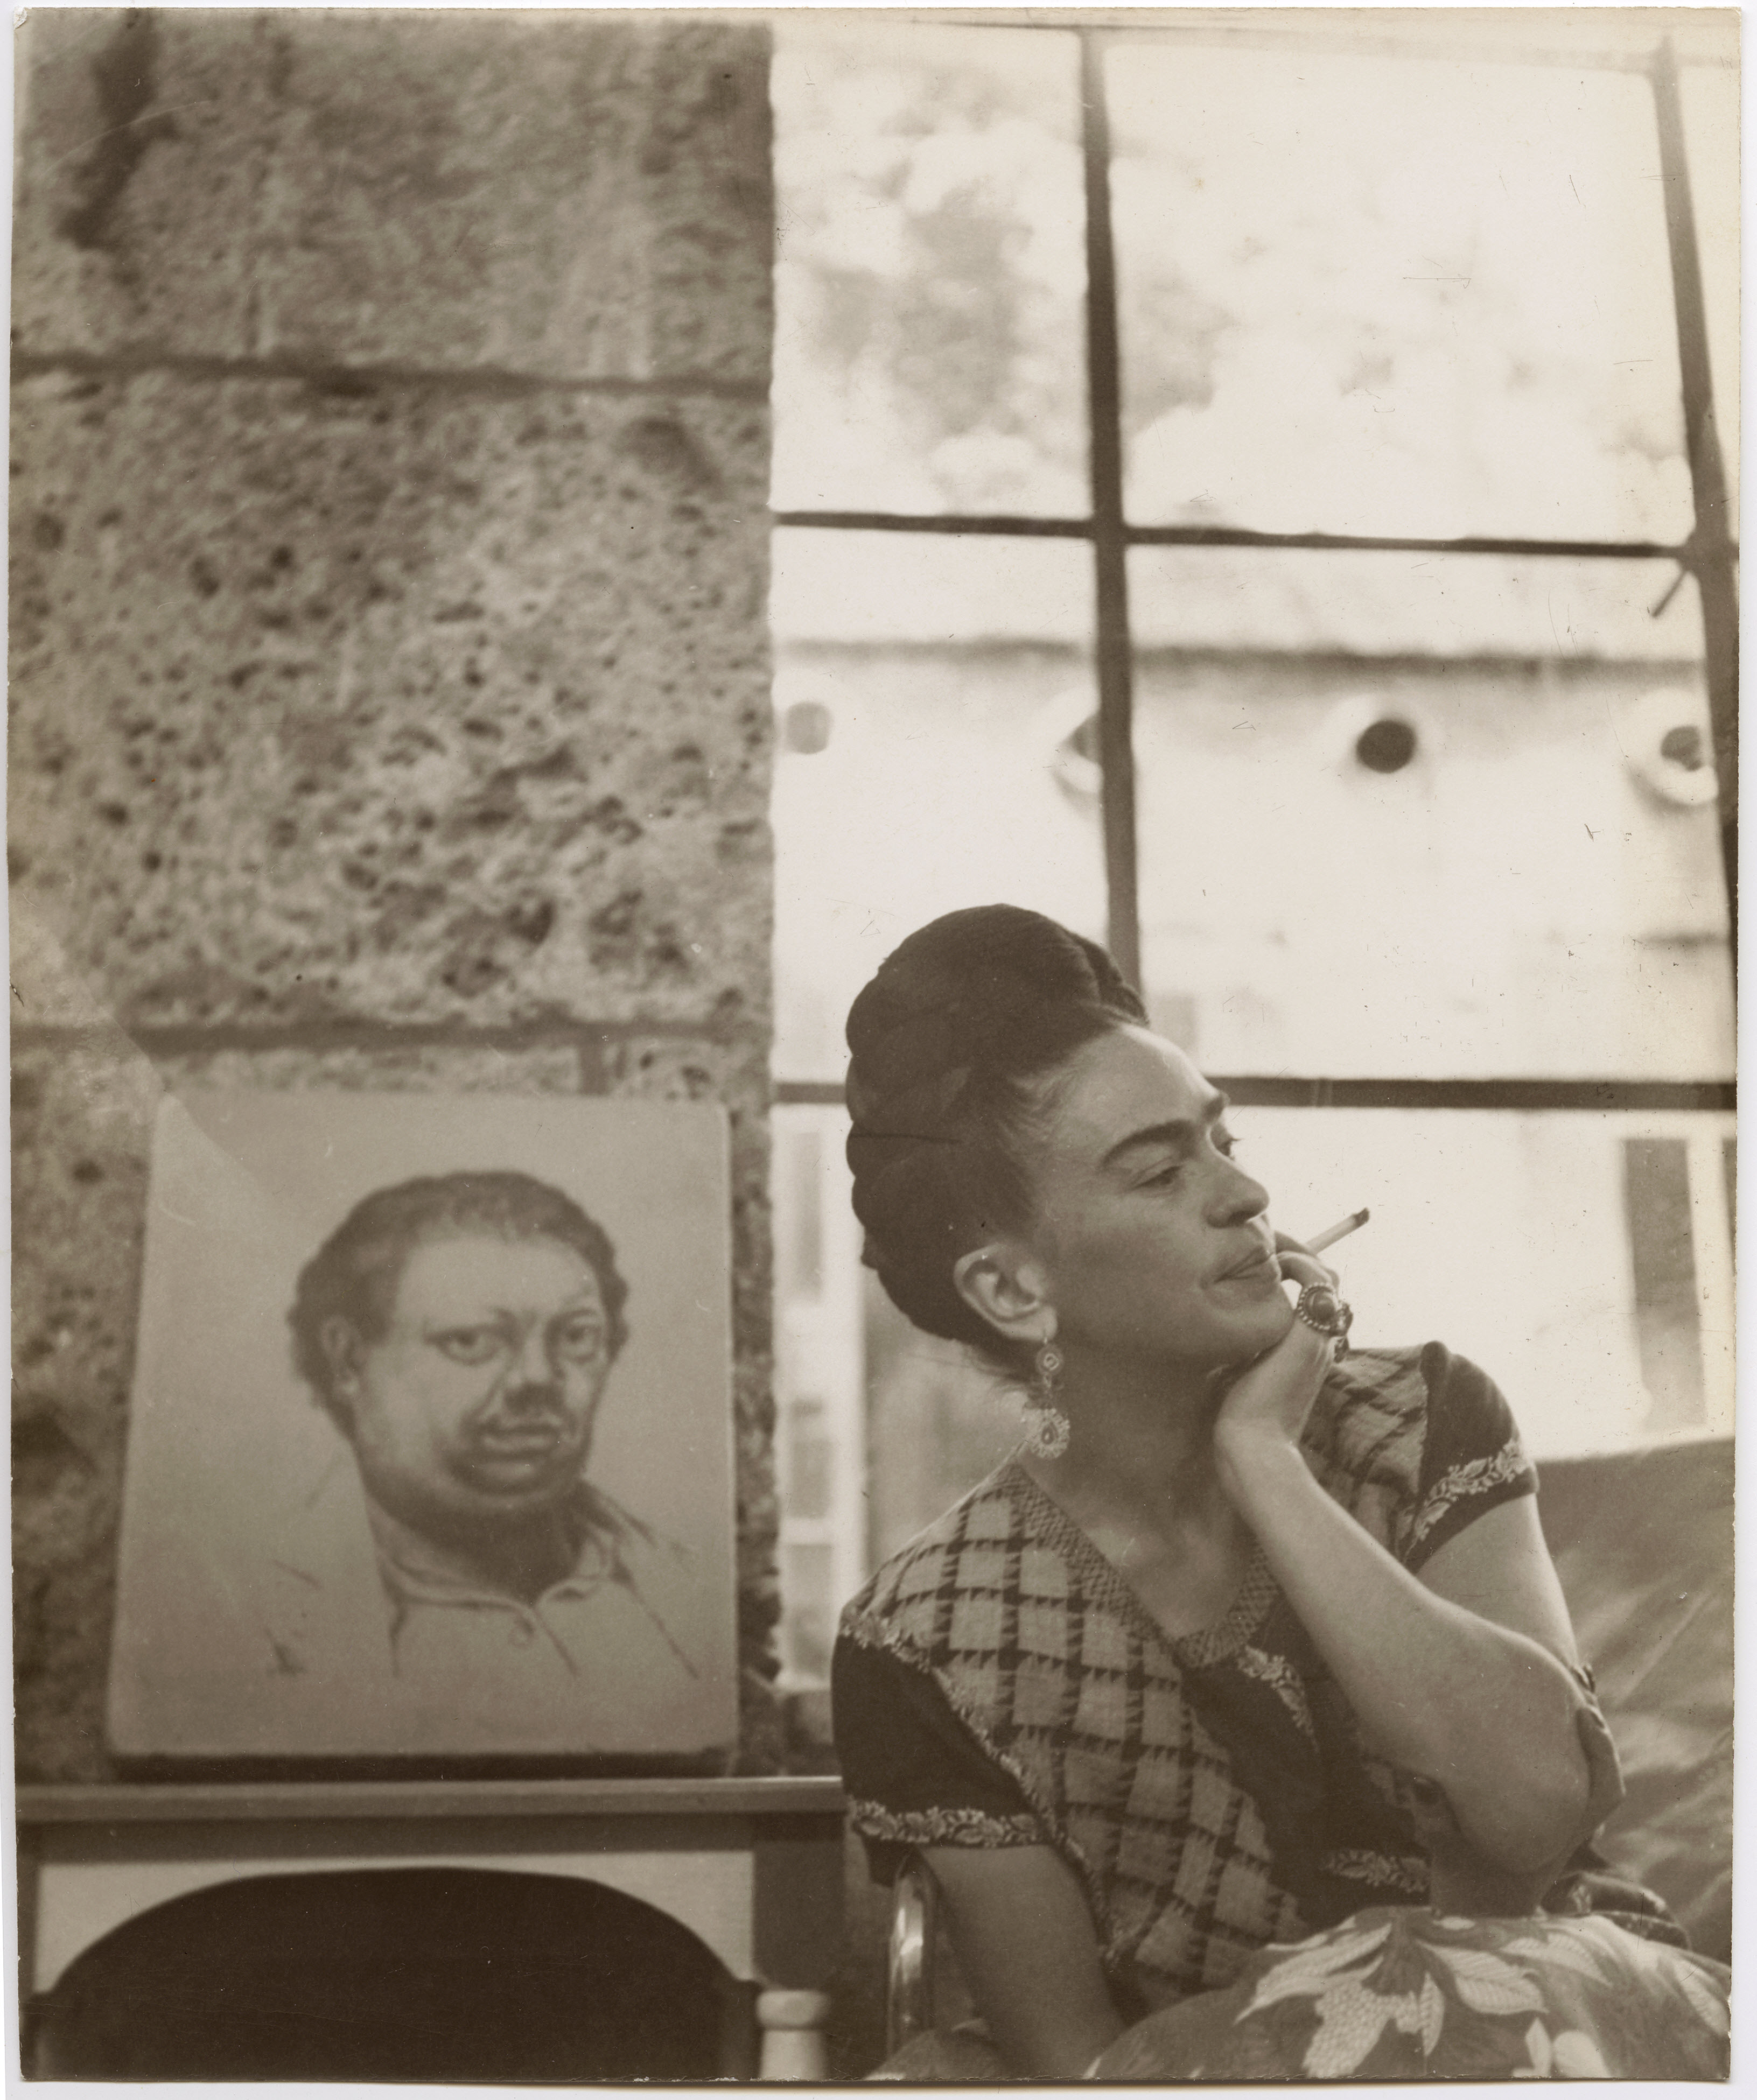 frida kahlo at the dali salvador dali museum salvador dali museum